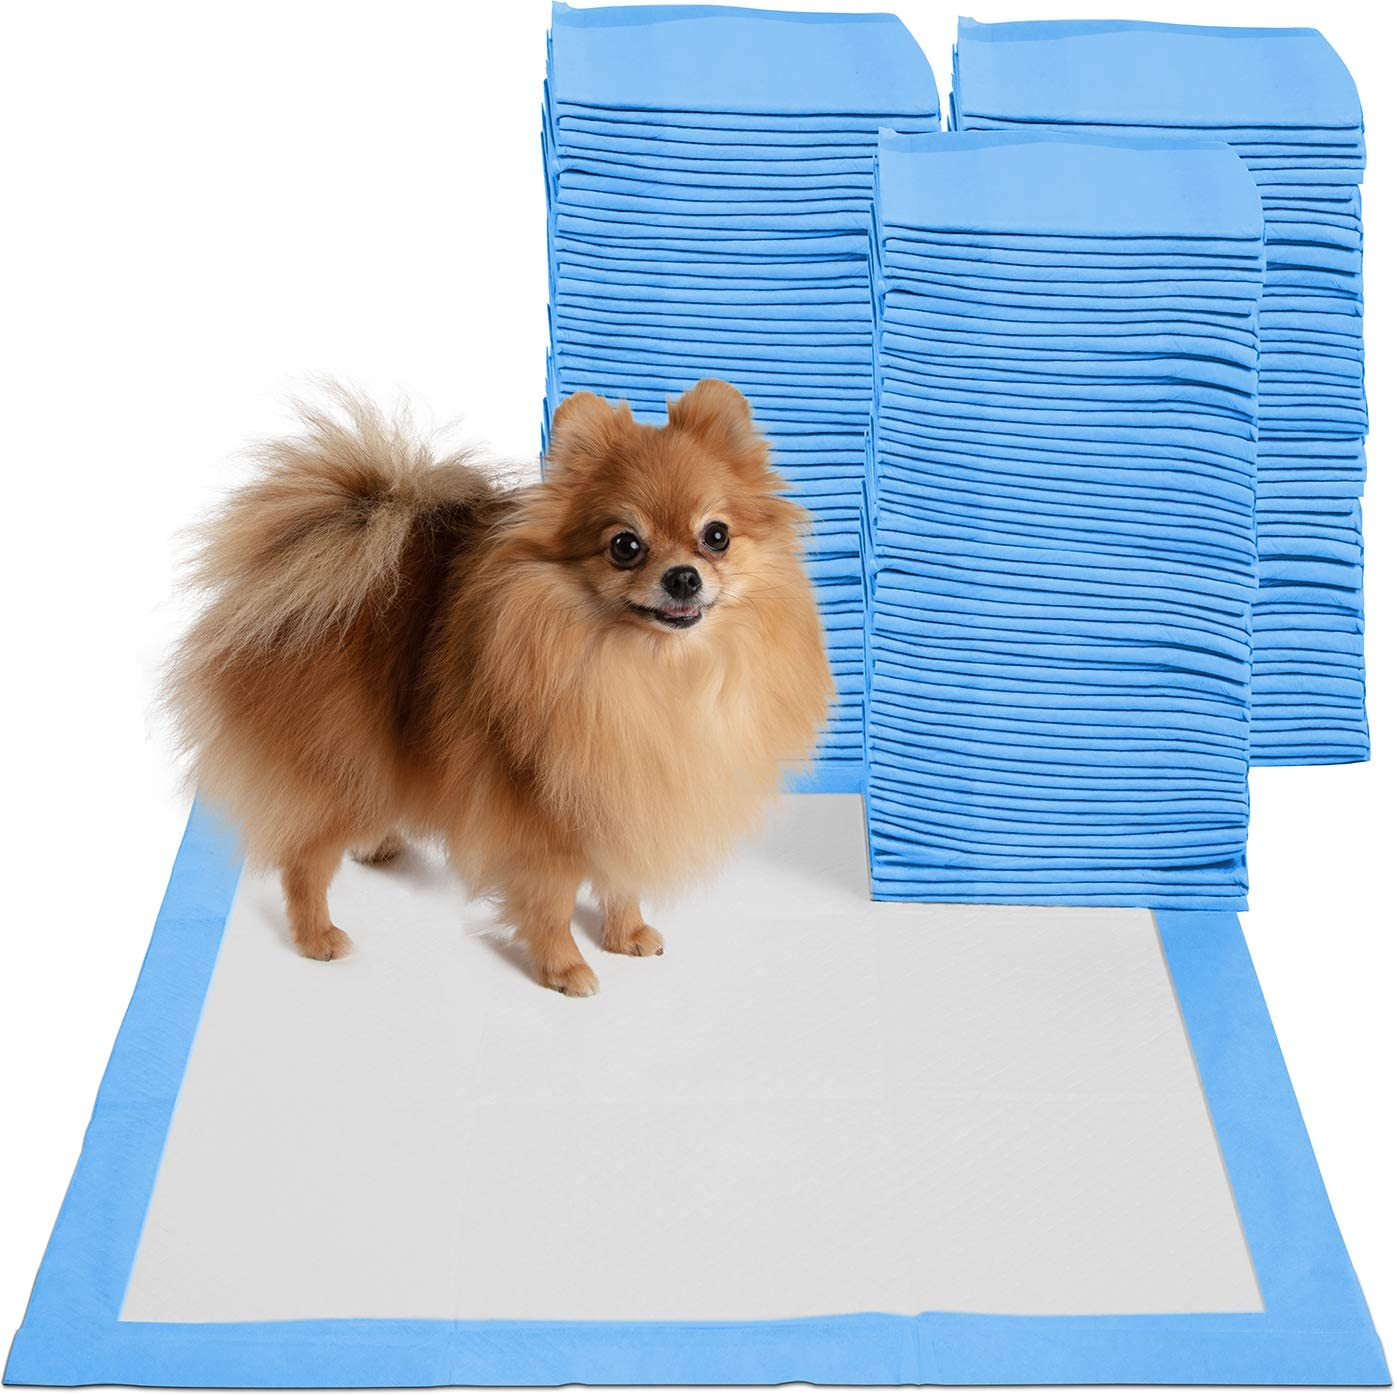 Puppy Pads Dog Pee Pad for Potty Training Dogs & Cats Large 22 x 22 Doggy Pet Supplies for Puppies All Absorb-ent Disposable Doggie in-Doors Piddle Absorbent Leak-Proof Urine Holder